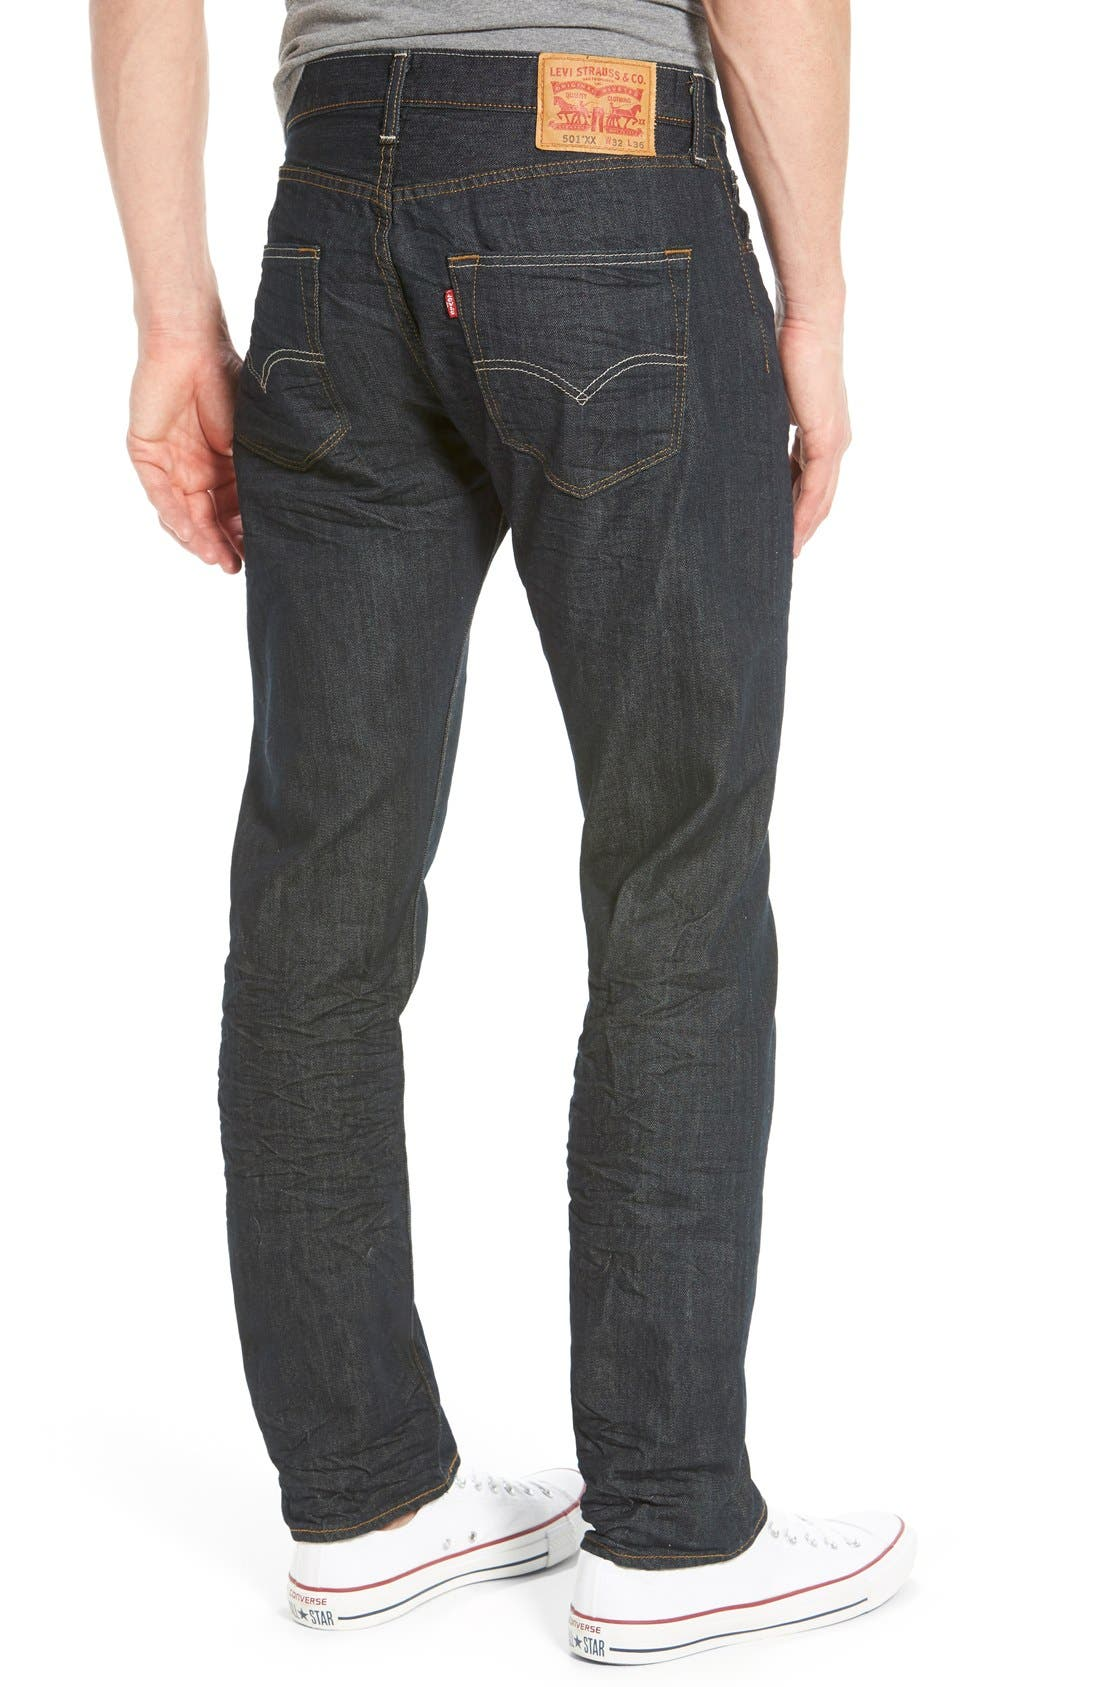 Levis Jeans Clothing Nordstrom